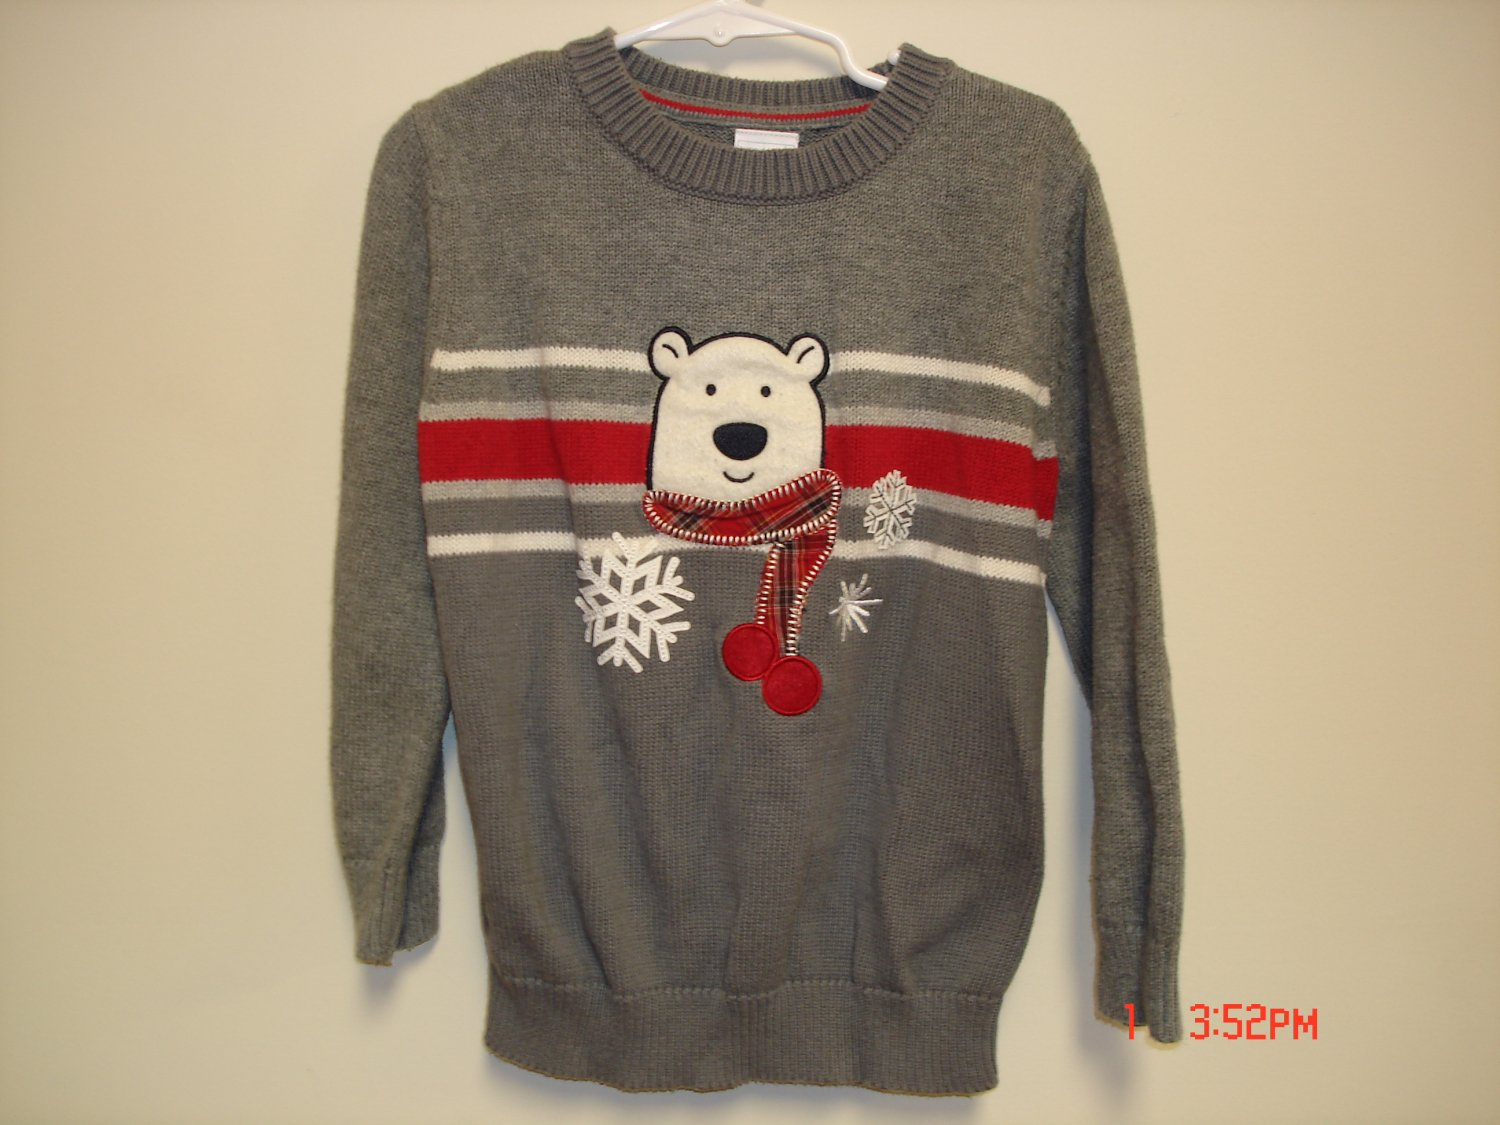 Sweater, Size 5T